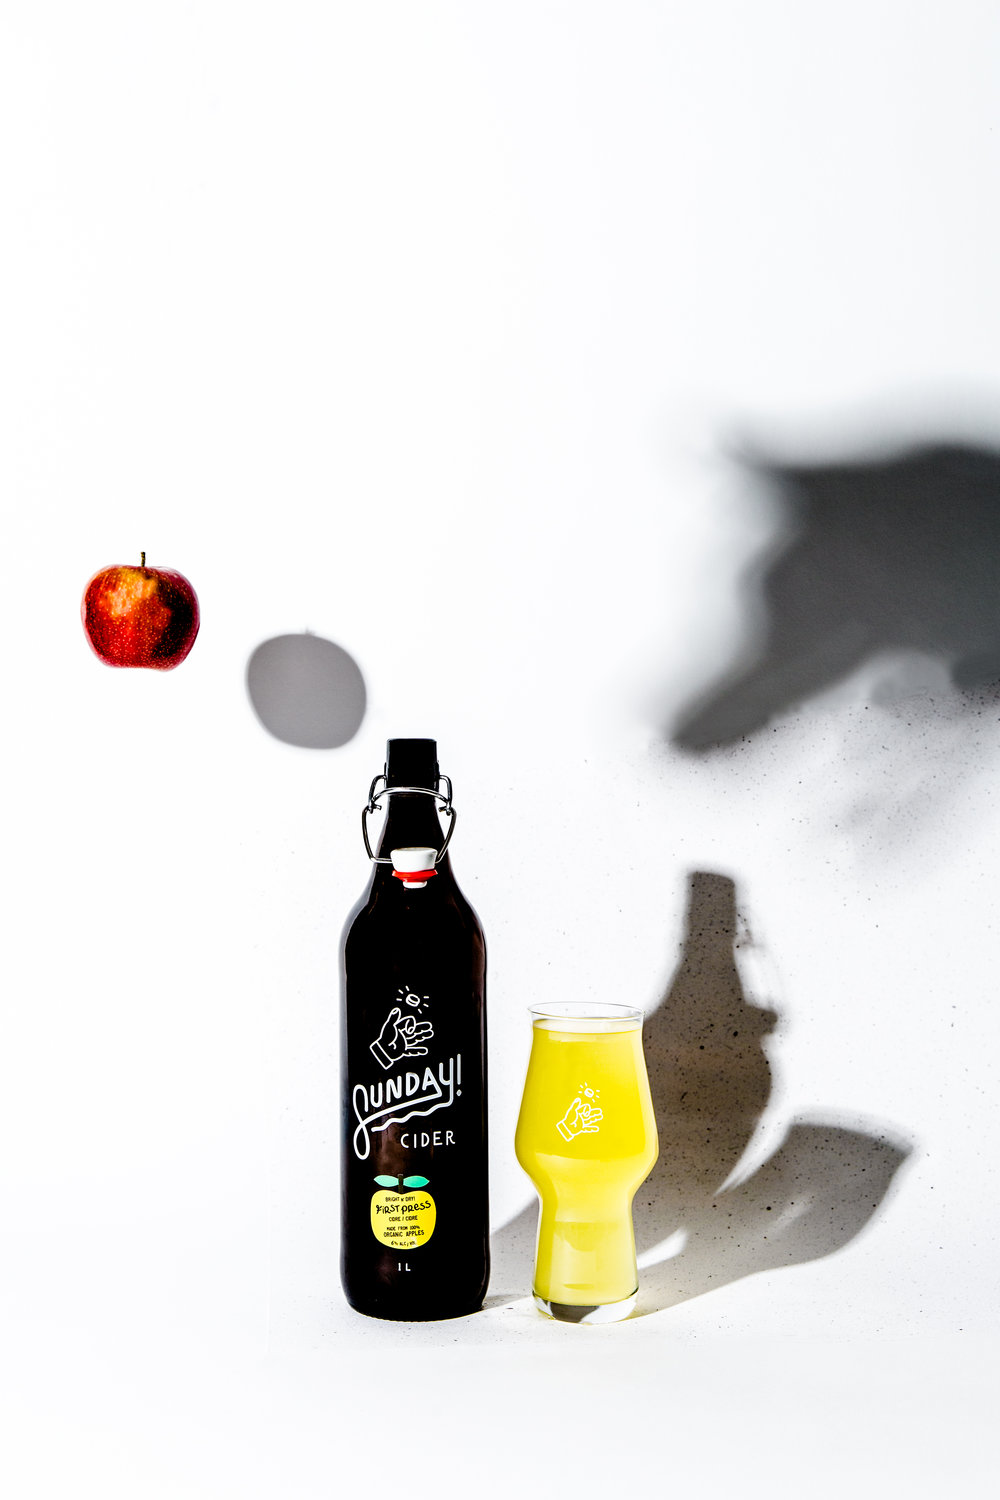 Client: Sunday Cider